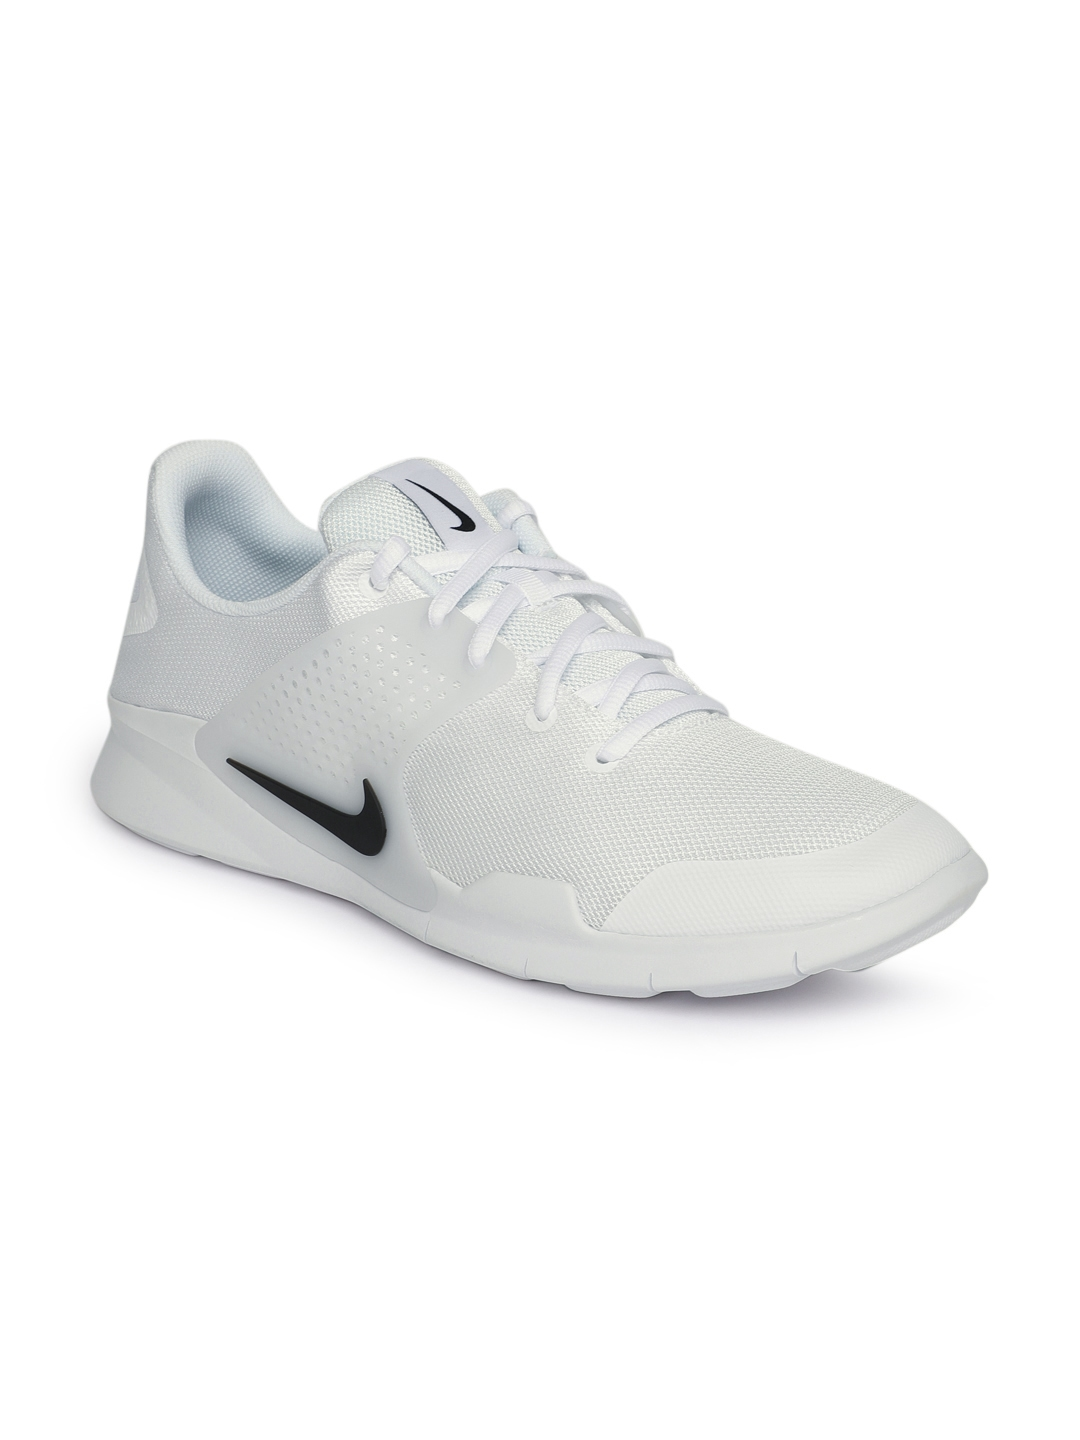 099d6e6770 Buy Nike Men White Arrowz Sneakers - Casual Shoes for Men 4030144 ...